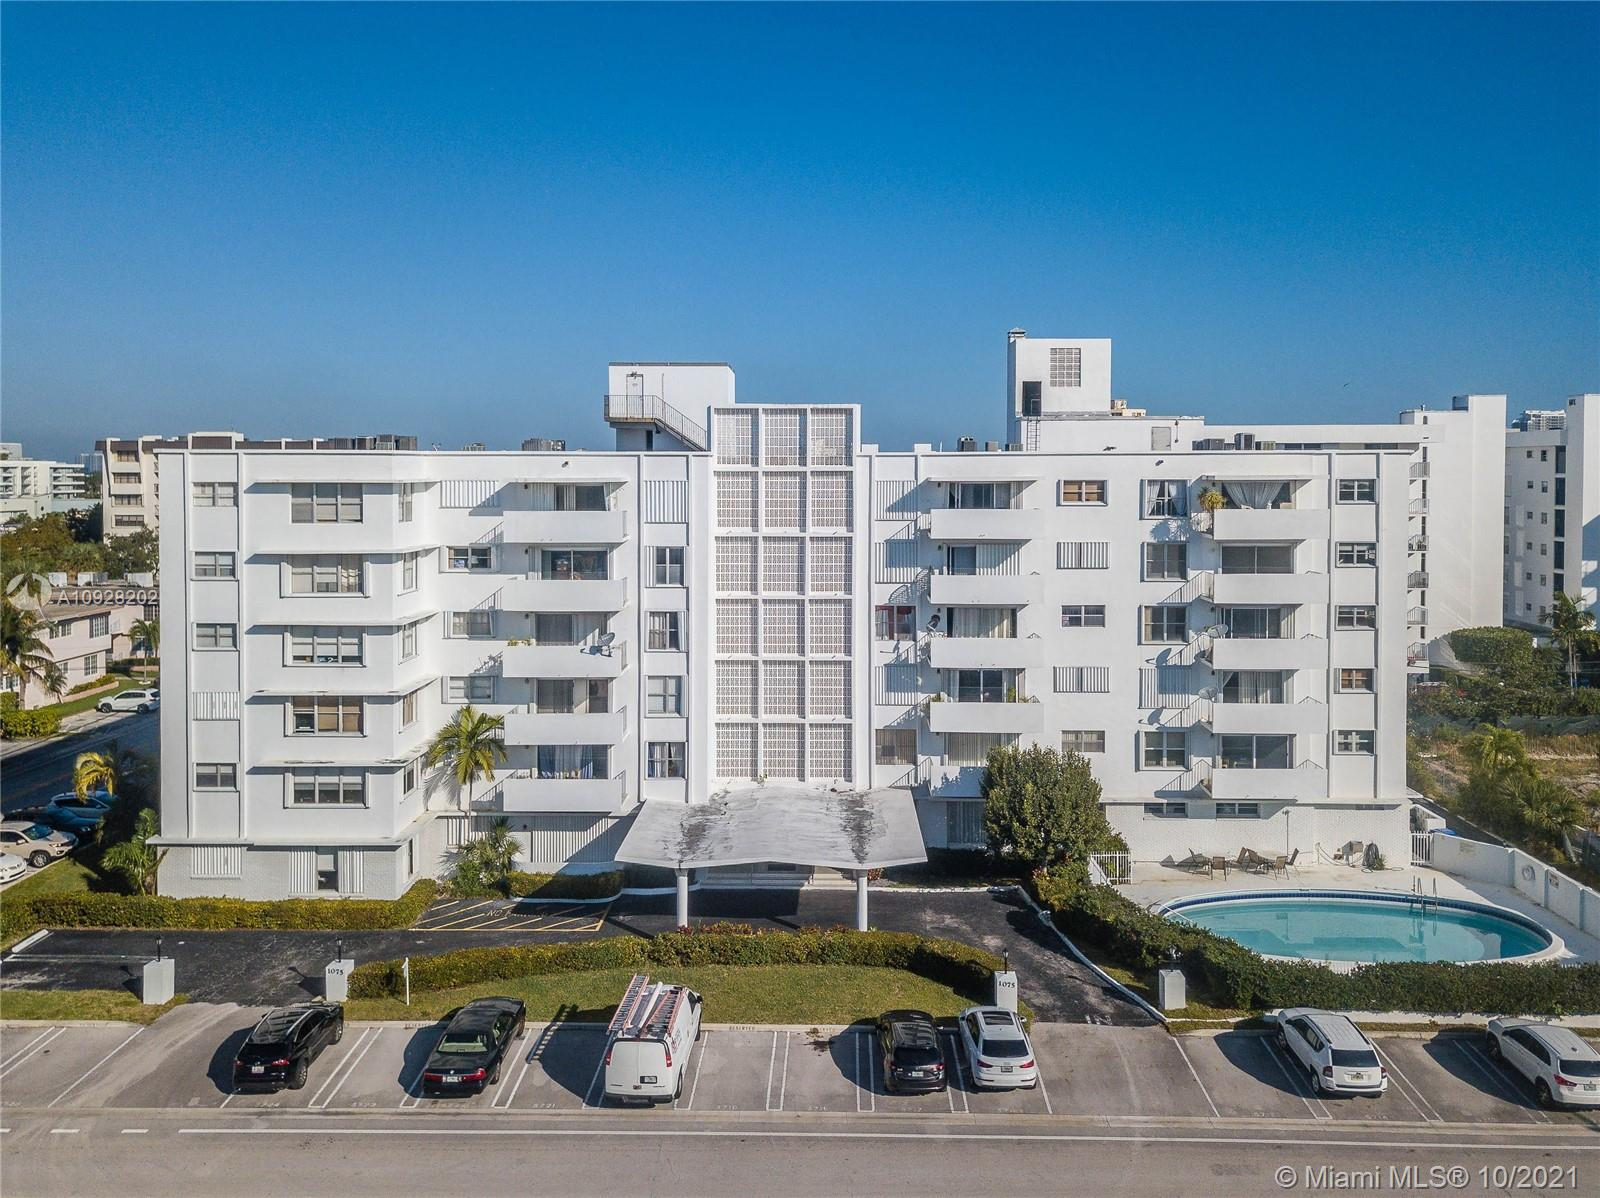 Spacious 1 bedroom 2 full baths condo with nearly 1300 sq ft of living space in the heart of Bay Harbor Islands. Features include updated kitchen with stainless steel appliances, an abundance of closets, storage space and open terrace overlooking the city and swimming pool. Located within walking distance to top rated K-8 school and just a short drive to Bal Harbour Shops, houses of worship and pristine beaches. Well maintained and pet friendly building (up to 2 dogs under 20 lbs). BUILDING HAS RESERVES.